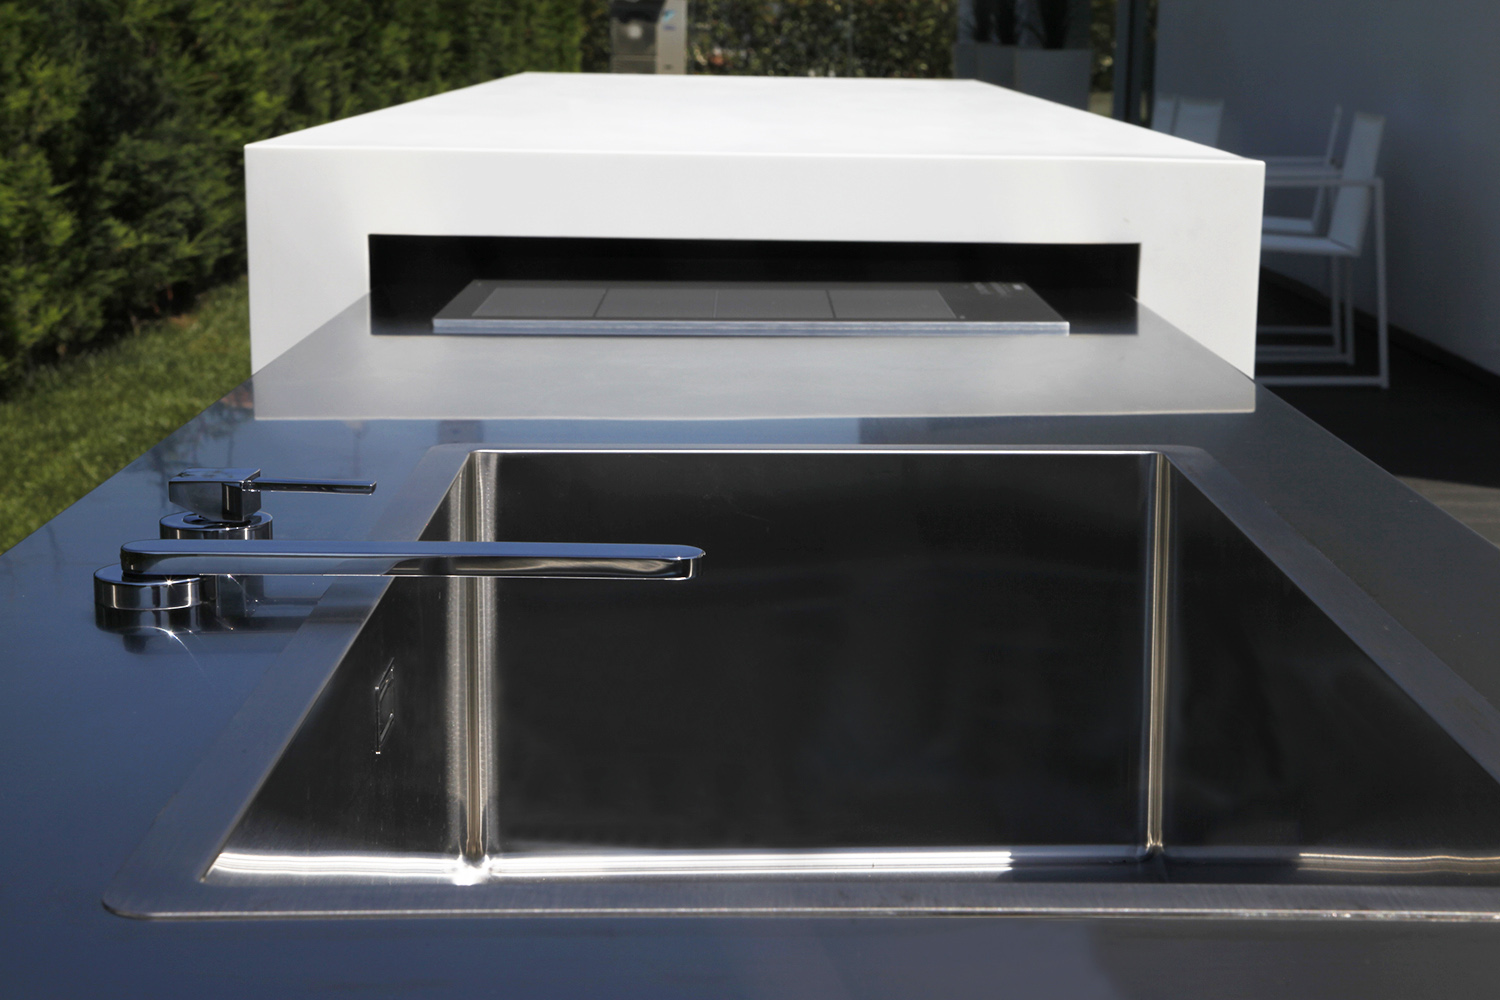 Detail of the components designed to hide inside the stainless steel cabinet  3ndy Studio